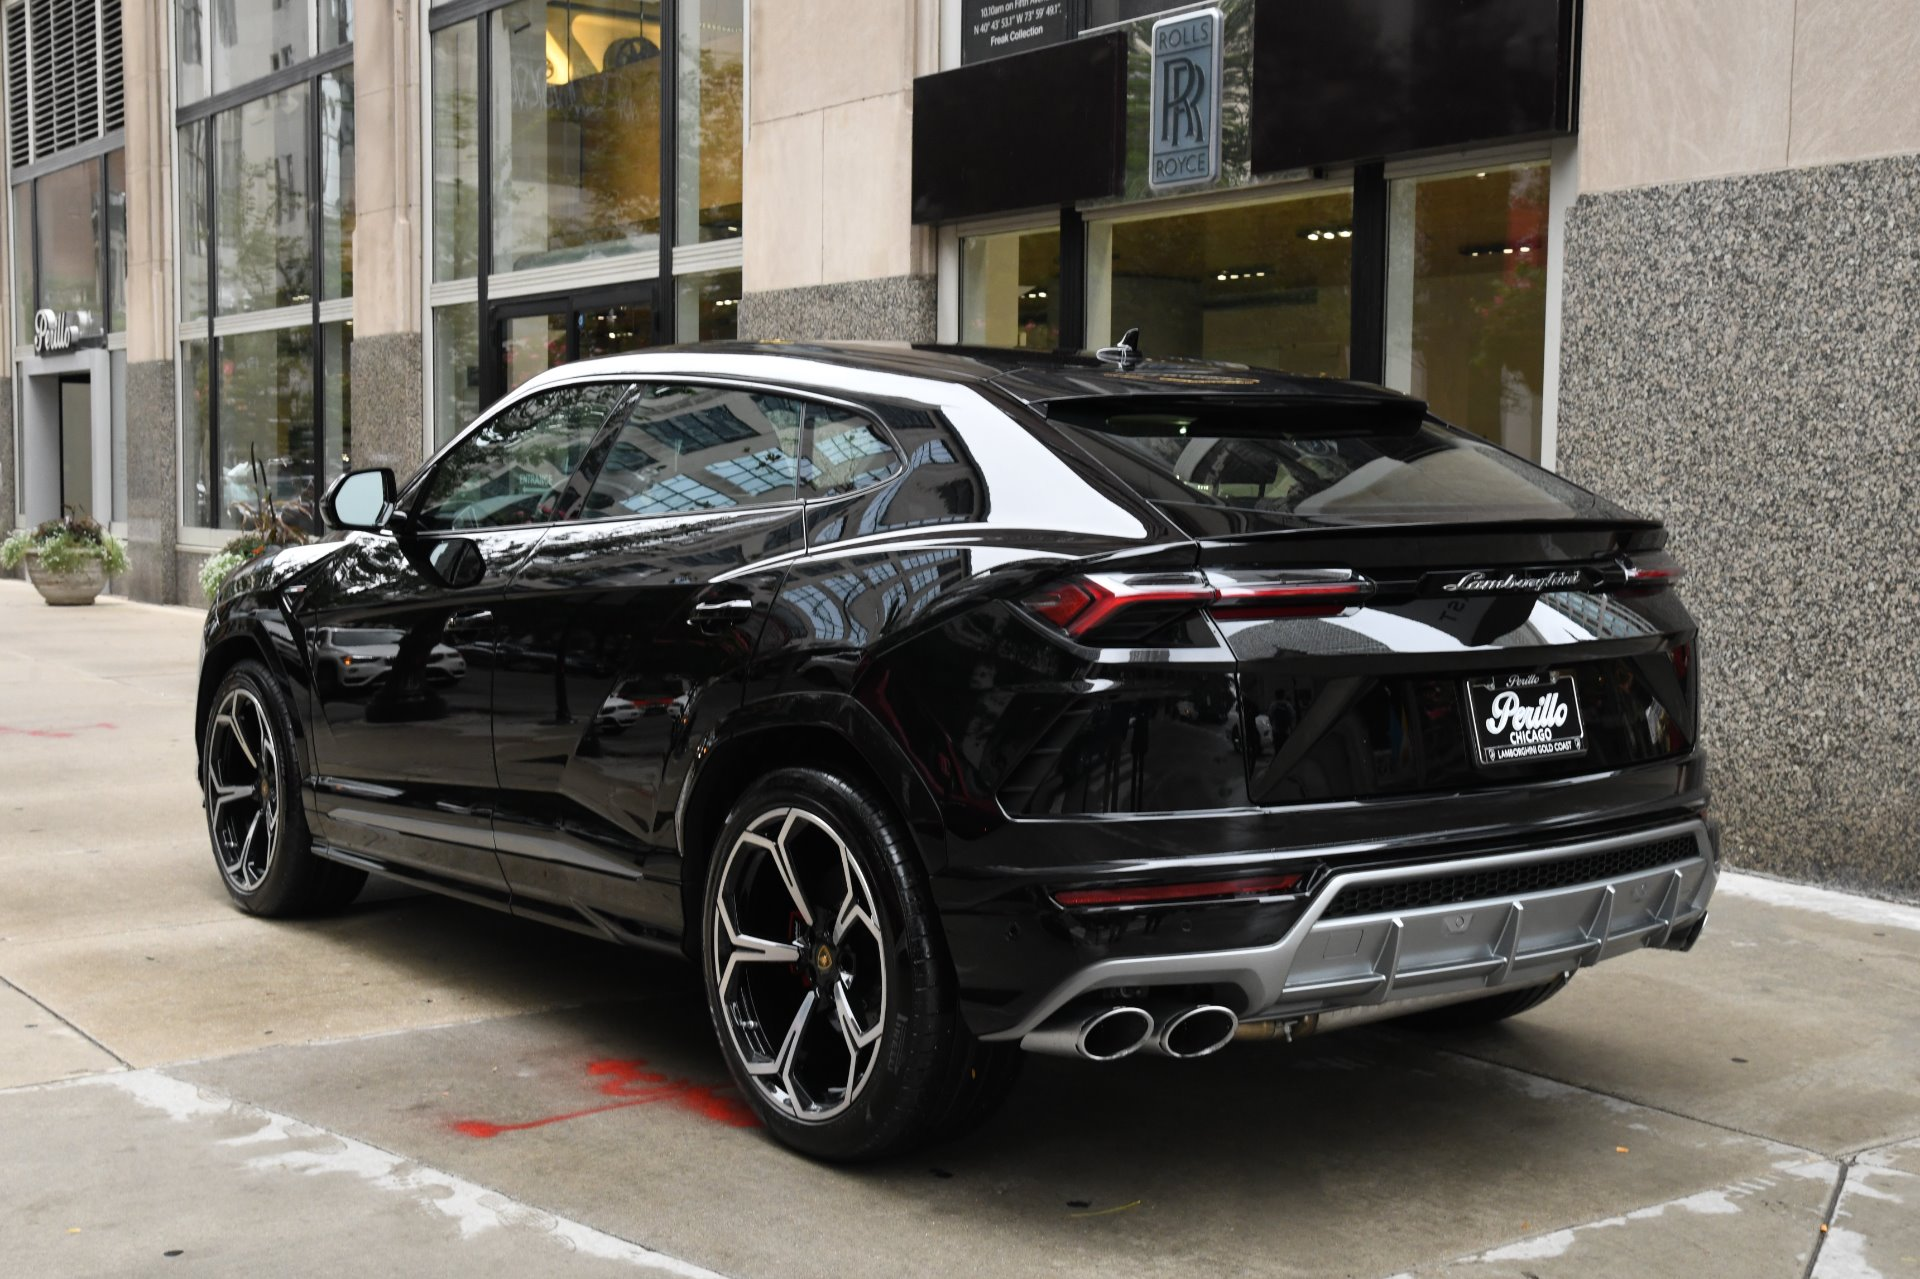 2019 Lamborghini Urus Stock 01033 For Sale Near Chicago